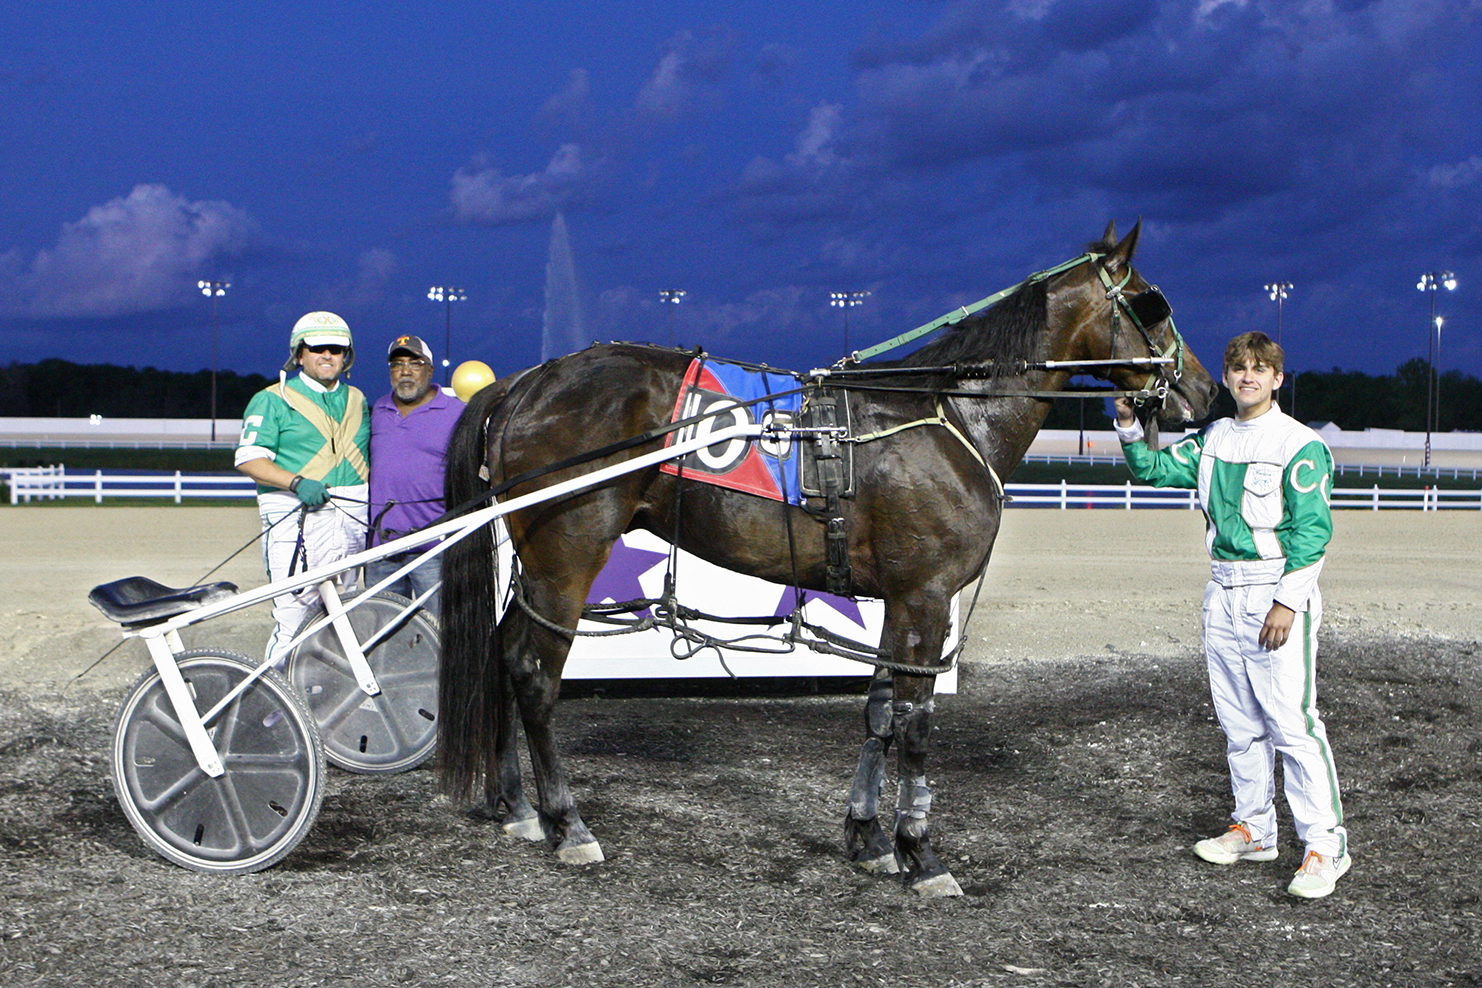 Conrad Stable collects wins at fairs